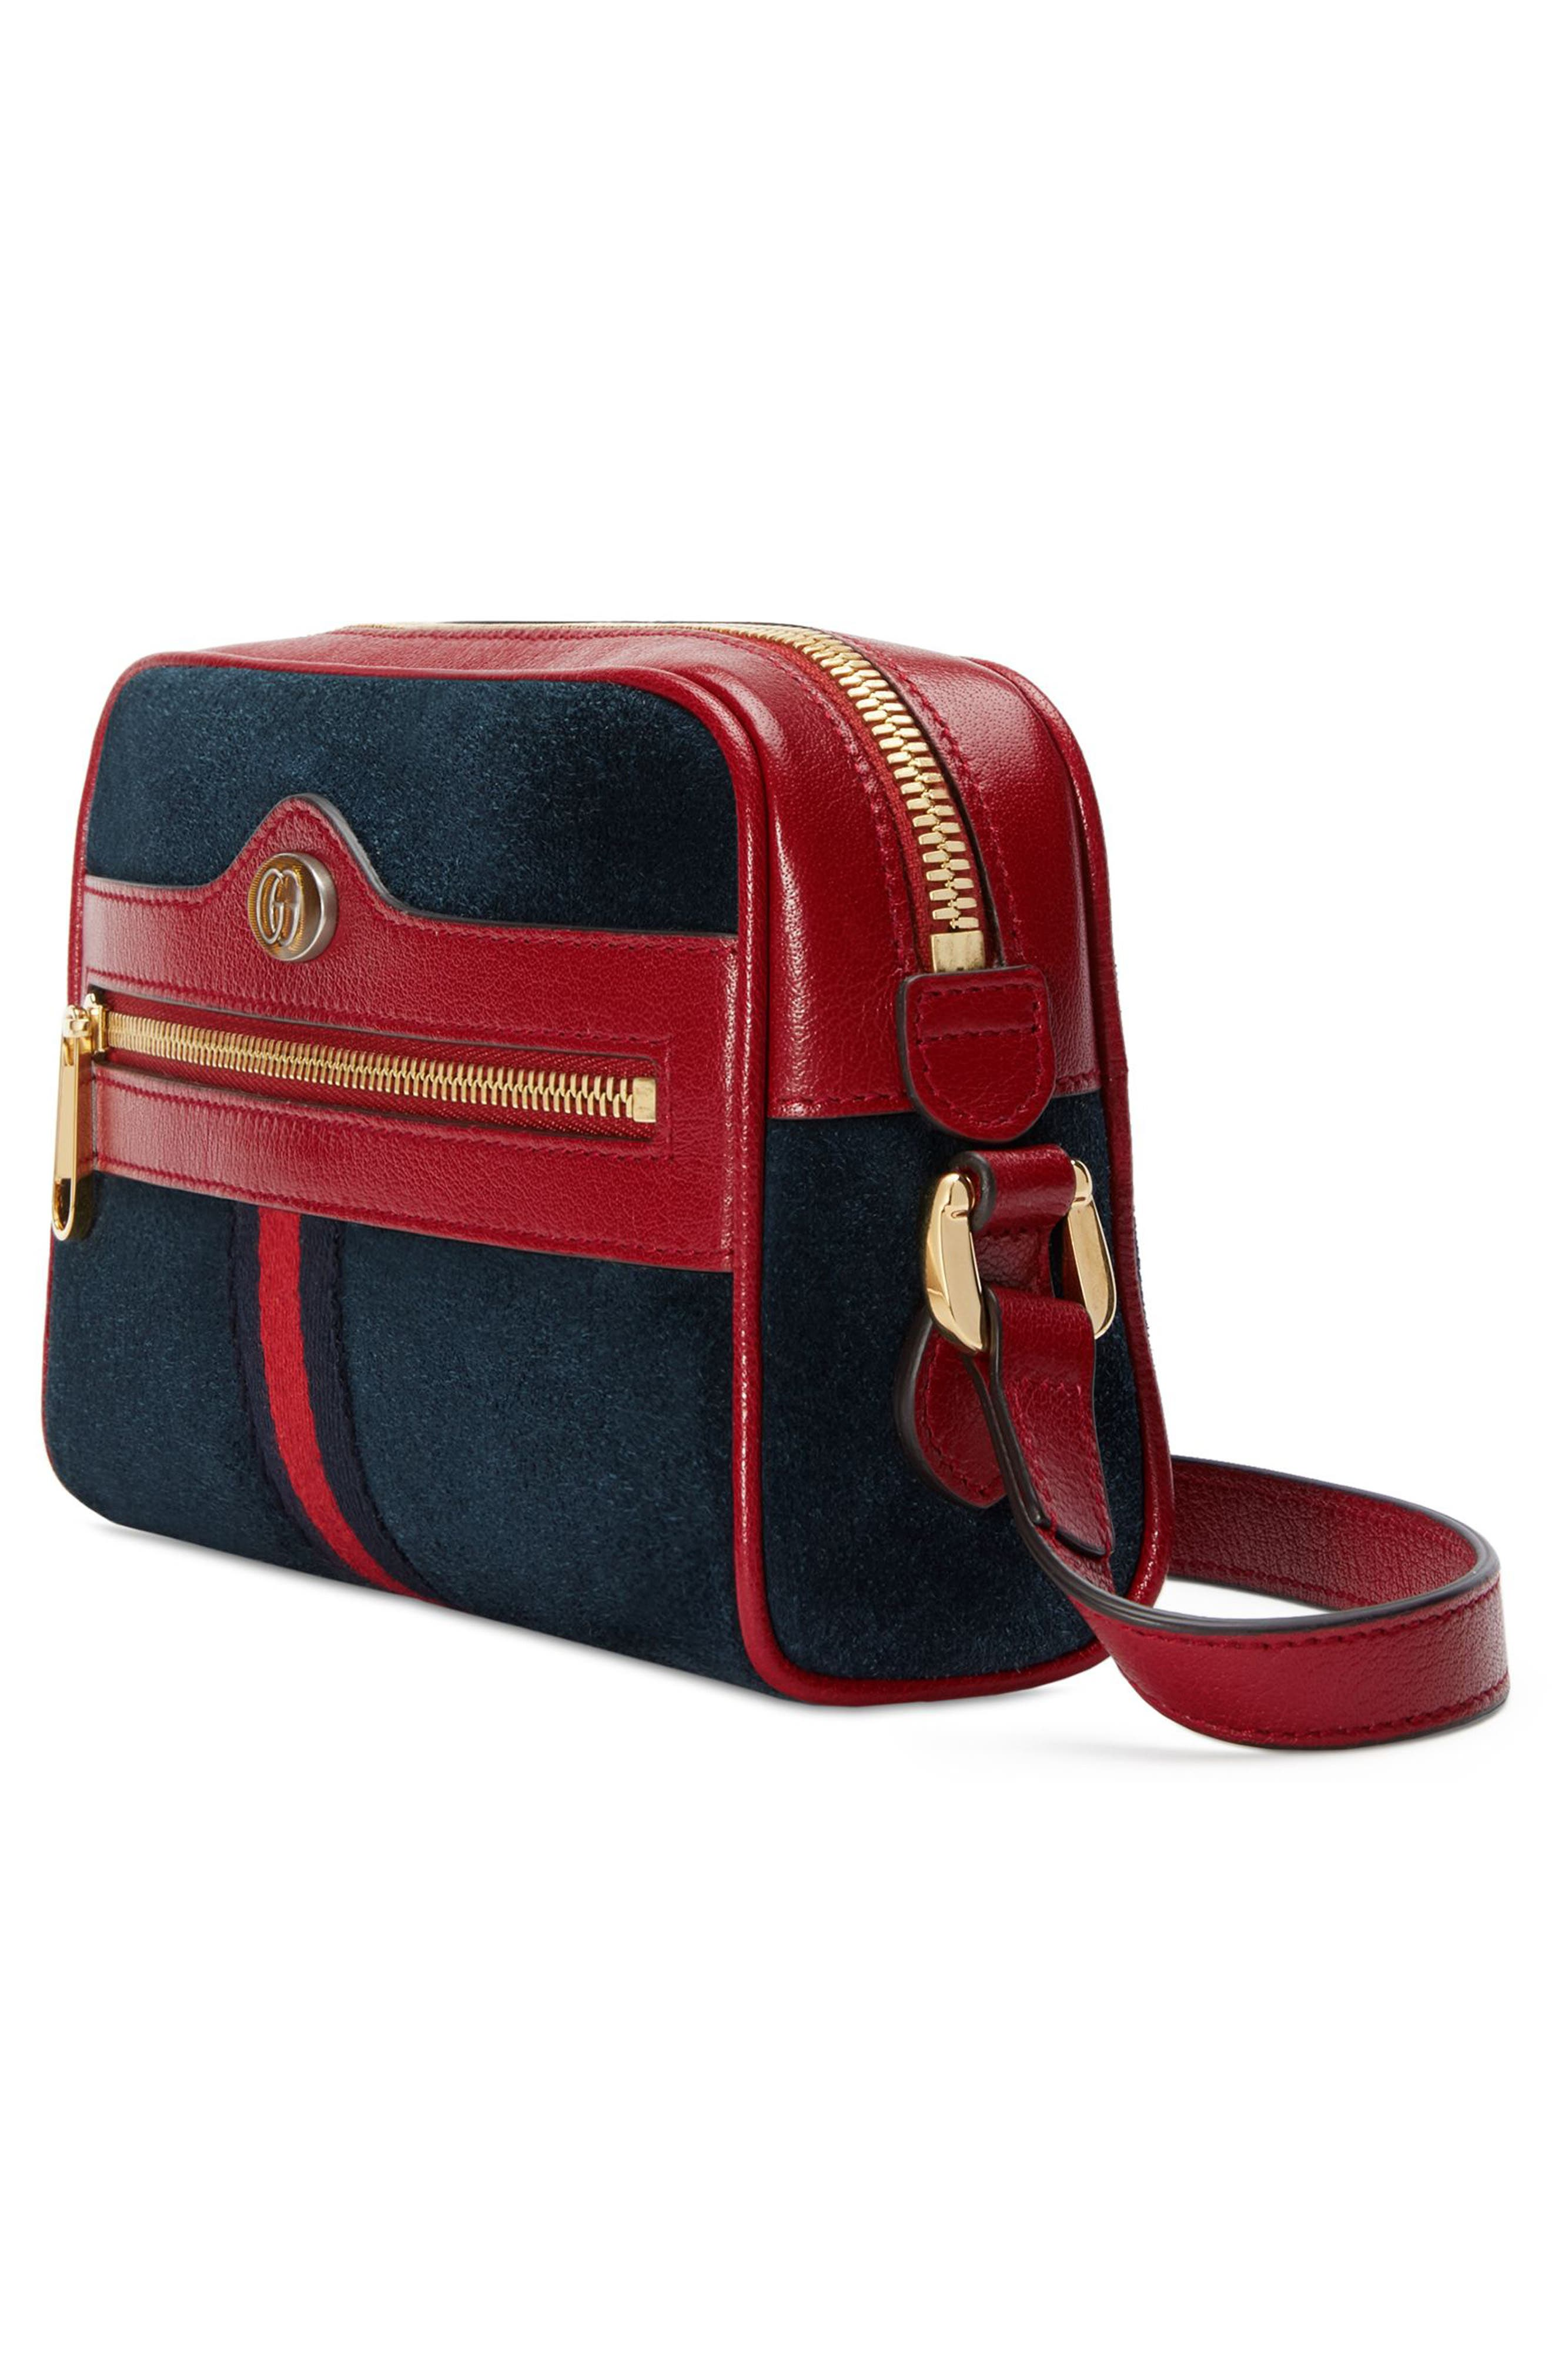 Ophidia Small Suede & Leather Crossbody Bag,                             Alternate thumbnail 4, color,                             NEW BLU/ ROMANATIC CERISE